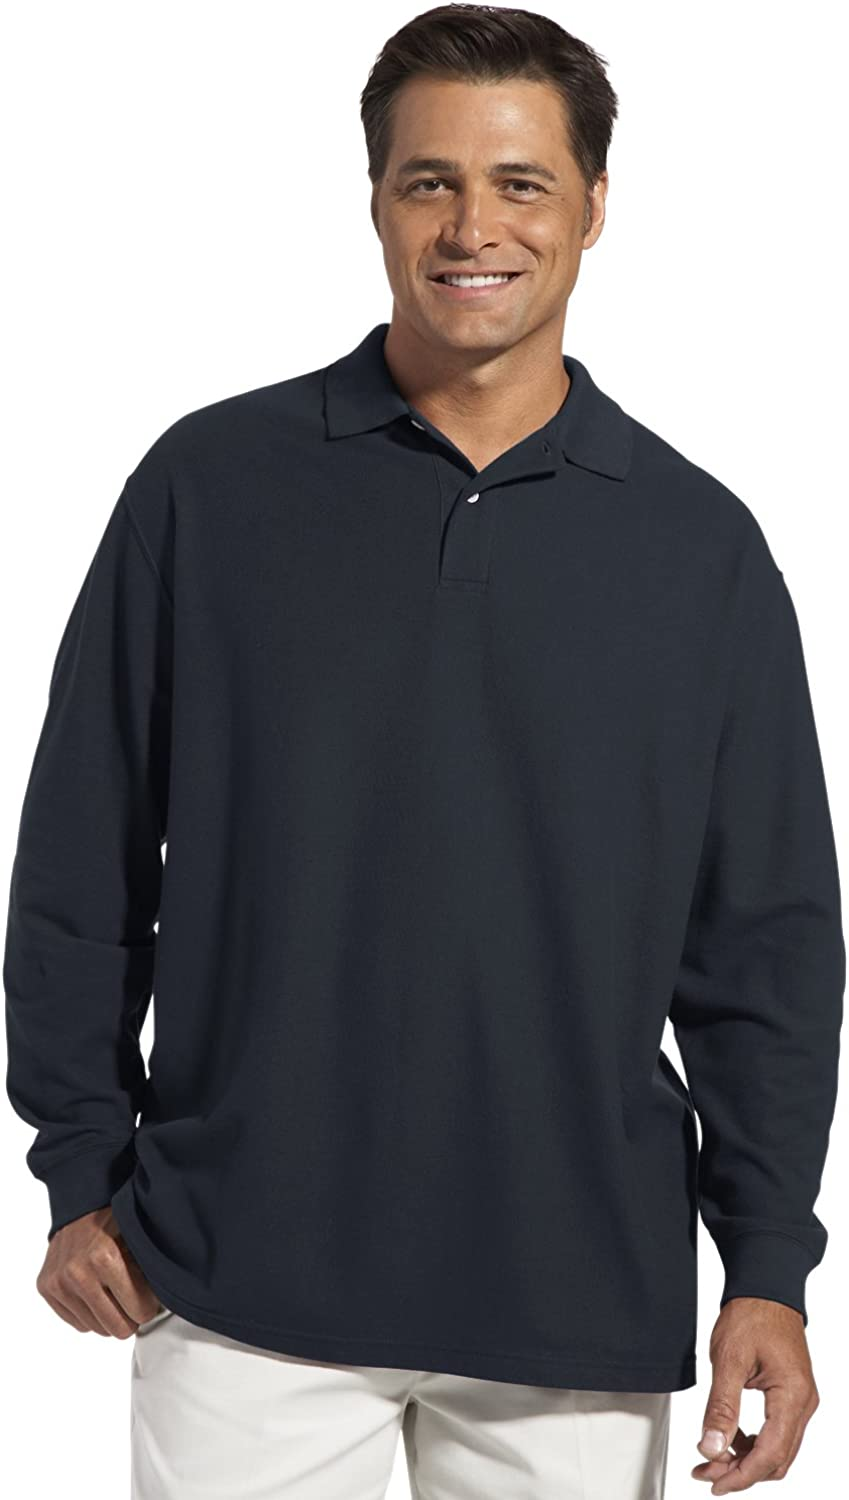 Navy XL Harbor Bay by DXL Big and Tall Honeycomb Pique Polo